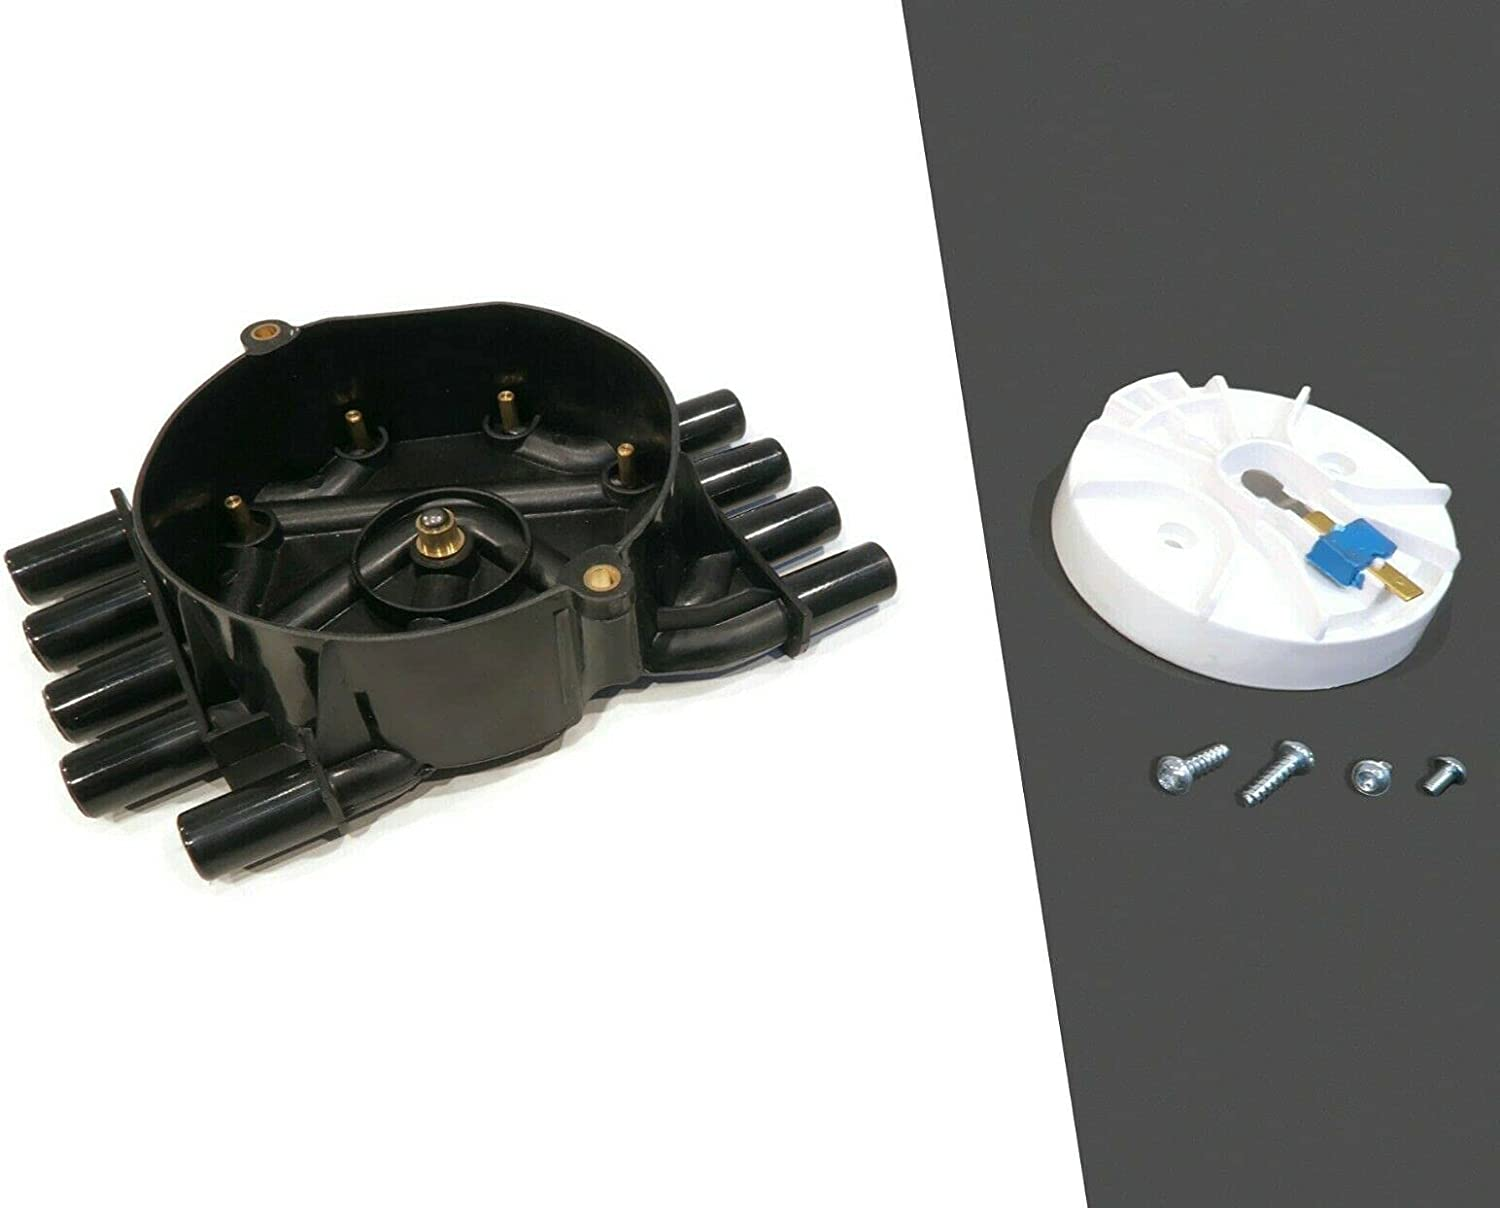 The ROP High material Shop Distributor Cap 5.0L 1998 Rotor for 67% OFF of fixed price MerCruiser